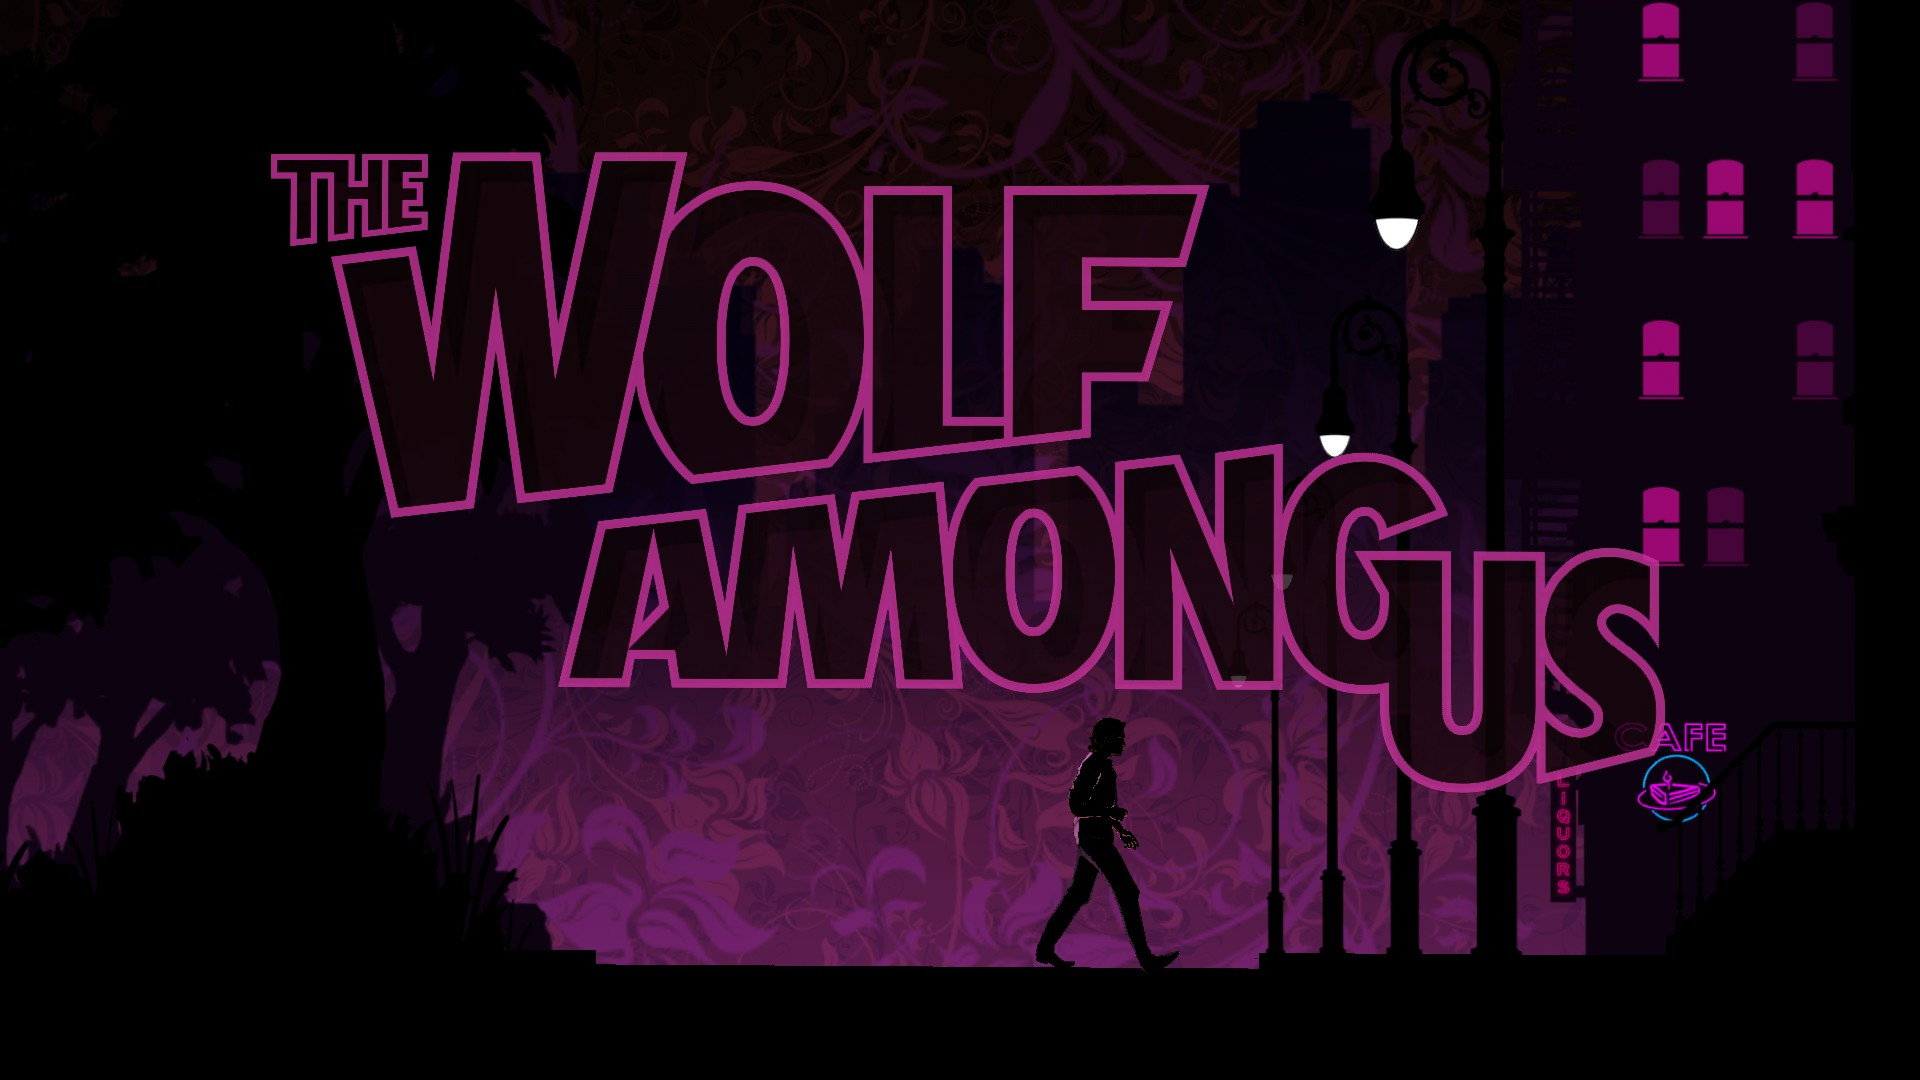 """   Jared Emerson-Johnson's work on the score remains stellar. He created the perfect tone and atmosphere for Bigby's often extreme actions during his investigation   . ""  -    Gaming Illustrated  on The Wolf Among Us: A Crooked Mile     ""Smoke & Mirrors…continues to feature incredible music, voice work and sound design. ""  -  Gaming Illustrated  on The Wolf Among Us: Smoke & Mirrors    ""  T   he soundtrack expresses a dark and moody tone while still having fairytale elements like flutes and chimes. It's incredibly well done.    ""  -  Cheat Code Central  on The Wolf Among Us: Faith     "" And then there is the music, which harnesses all of the fantastic, evocative synth of an '80s action movie. Think what would happen if John Carpenter had a chance to direct an adult animated version of Drive, and you'll be in the same neck of the woods as Wolf.   "" -    IGN  on The Wolf Among Us: Faith     ""Jared Emerson-Johnson nails the soundtrack once again.    ""  -  Mixnmojo  on The Wolf Among Us: Faith      ""The quality music keeps with the '80s era and has a detective vibe. The voice actors are top-notch and make their parts believable    ""  -  Game Informer  on The Wolf Among Us: Faith     ""The sound design and music are expertly rendered…[they're] as instrumental in conveying the flavor and feel of Fabletown as the excellent voice-acting.    ""  -  Escapist Magazine  on The Wolf Among Us: Faith     ""With The Wolf Among Us, the art team are at the heart of the success, along with Jared Emerson-Johnson, whose musical contributions were hugely important to The Walking Dead's most effective moments.      ""  -  Rock, Paper, Shotgun  on The Wolf Among Us"